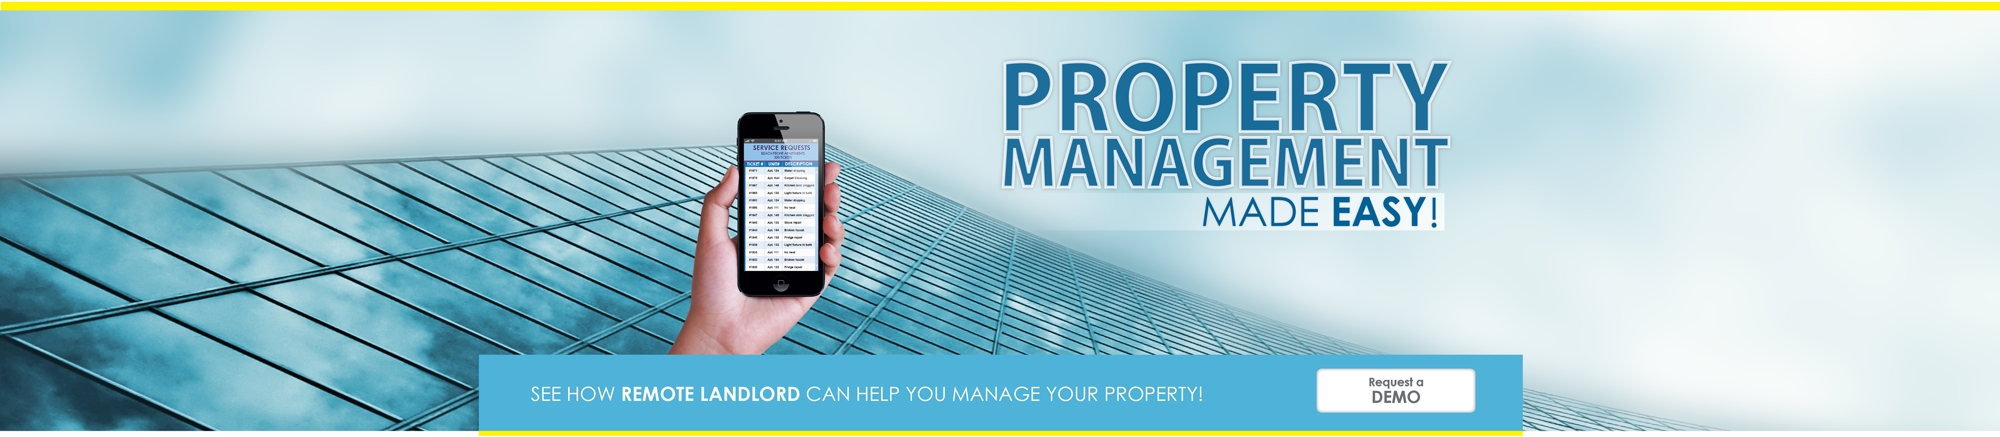 Property Management made easy with Remote Landlord Property Management Software.